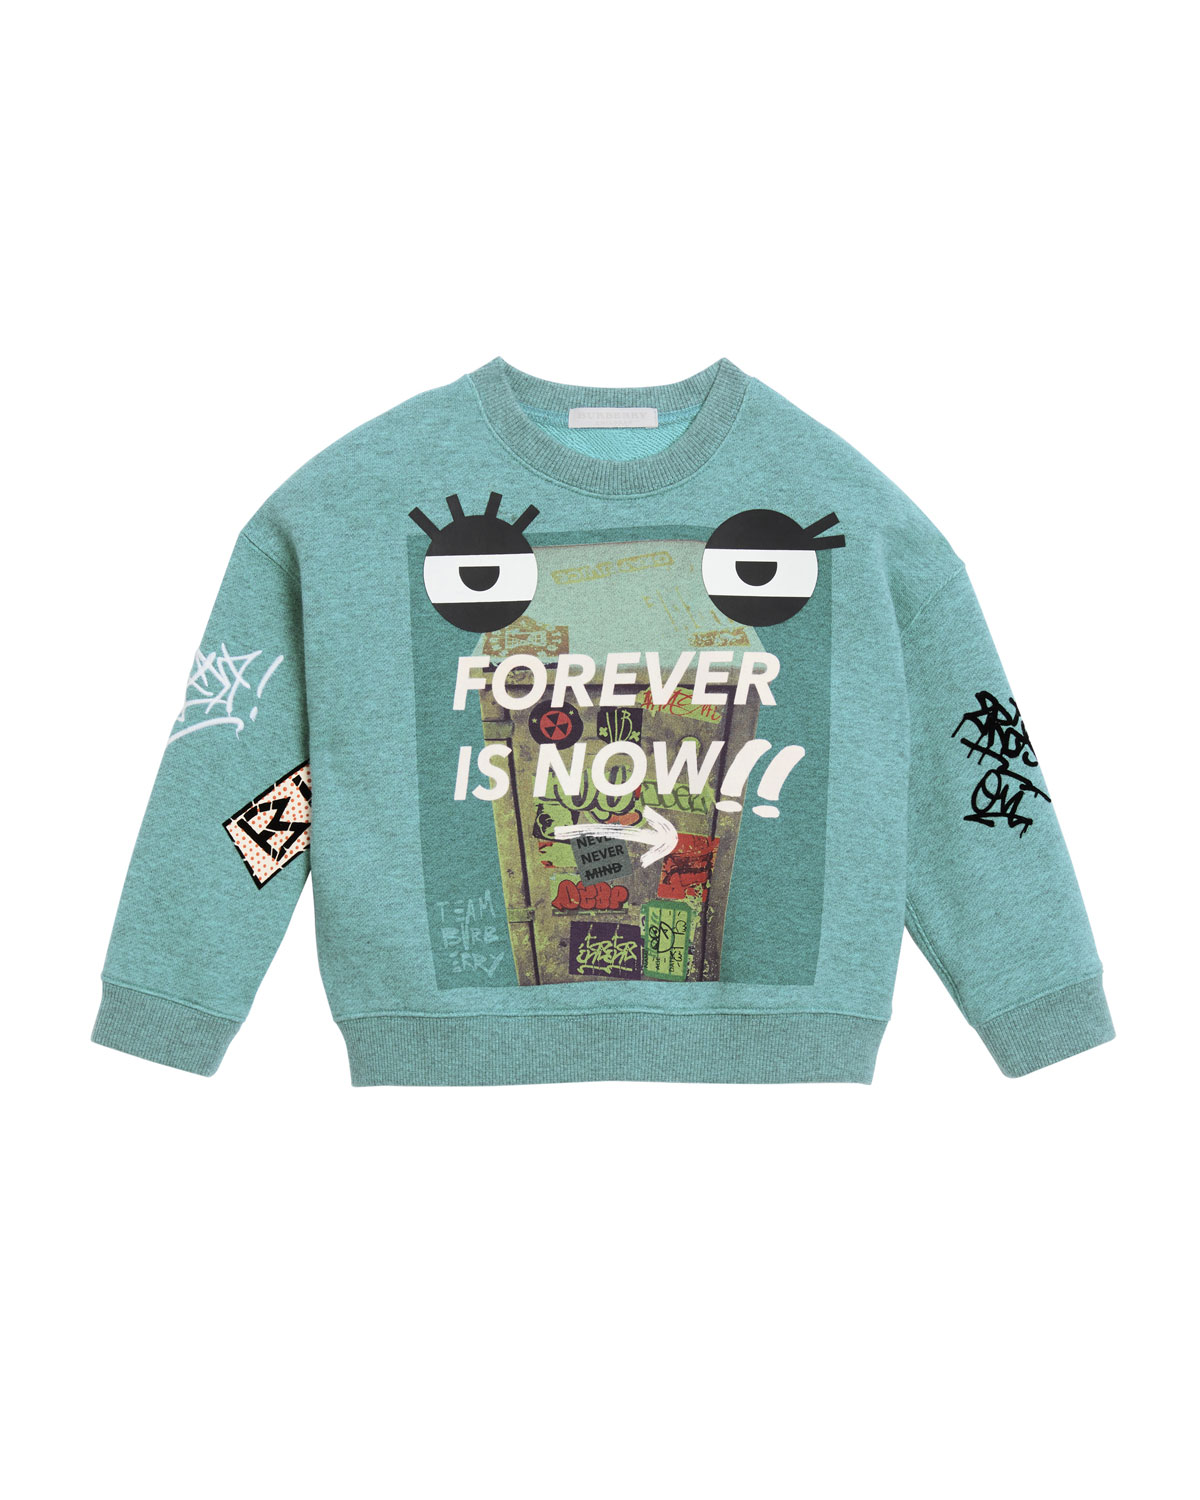 Forever Is Now Graphic Sweatshirt, Size 4-14